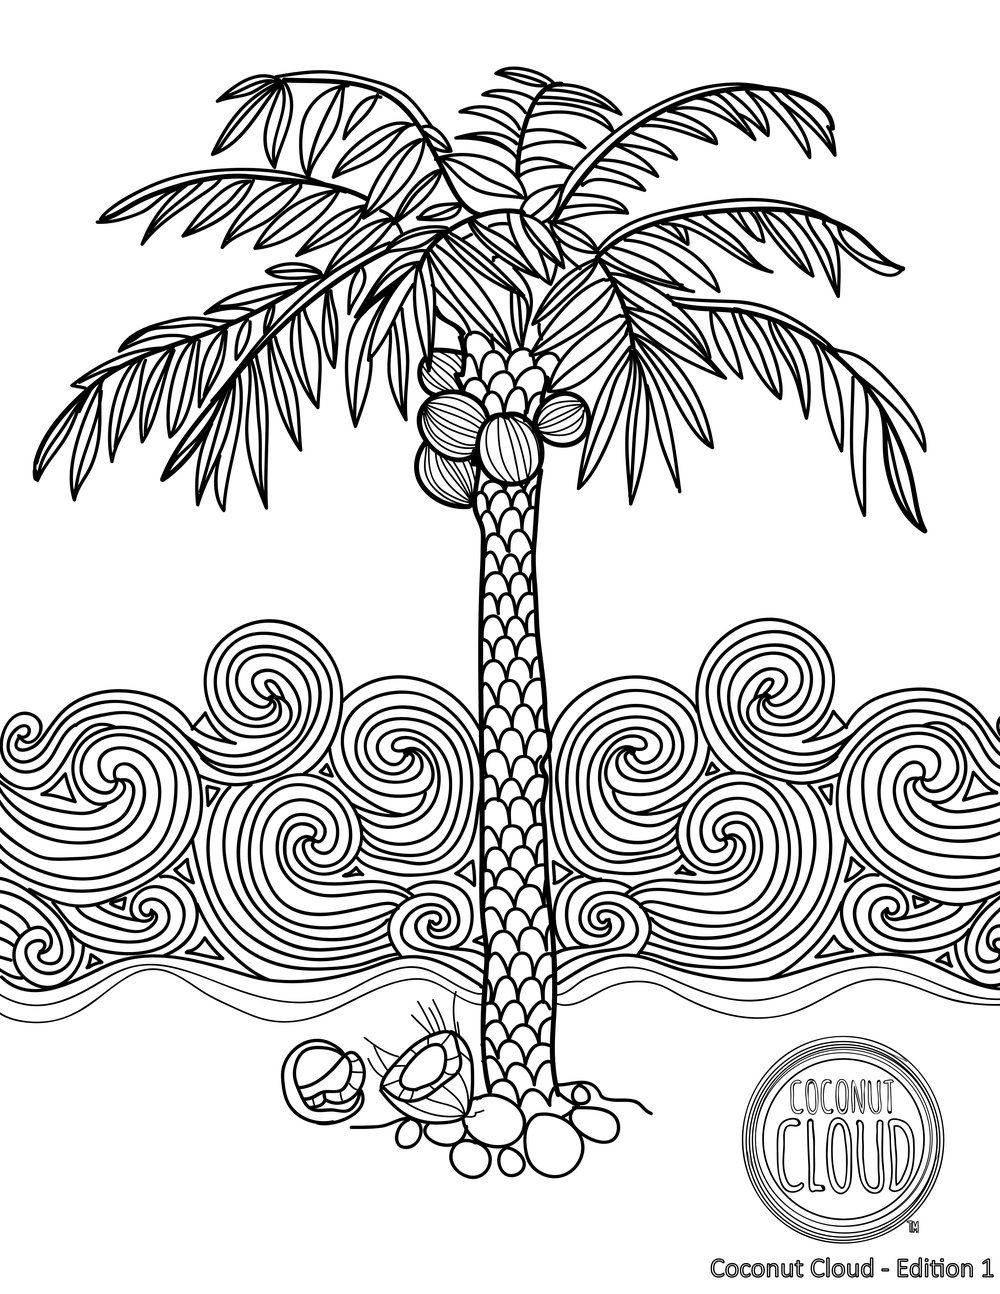 Save And Print This Coloring Book Page Facebook Instagram Or Tweet Us Your Amazing Finished Product We Cant Wait To See How It Turns Out